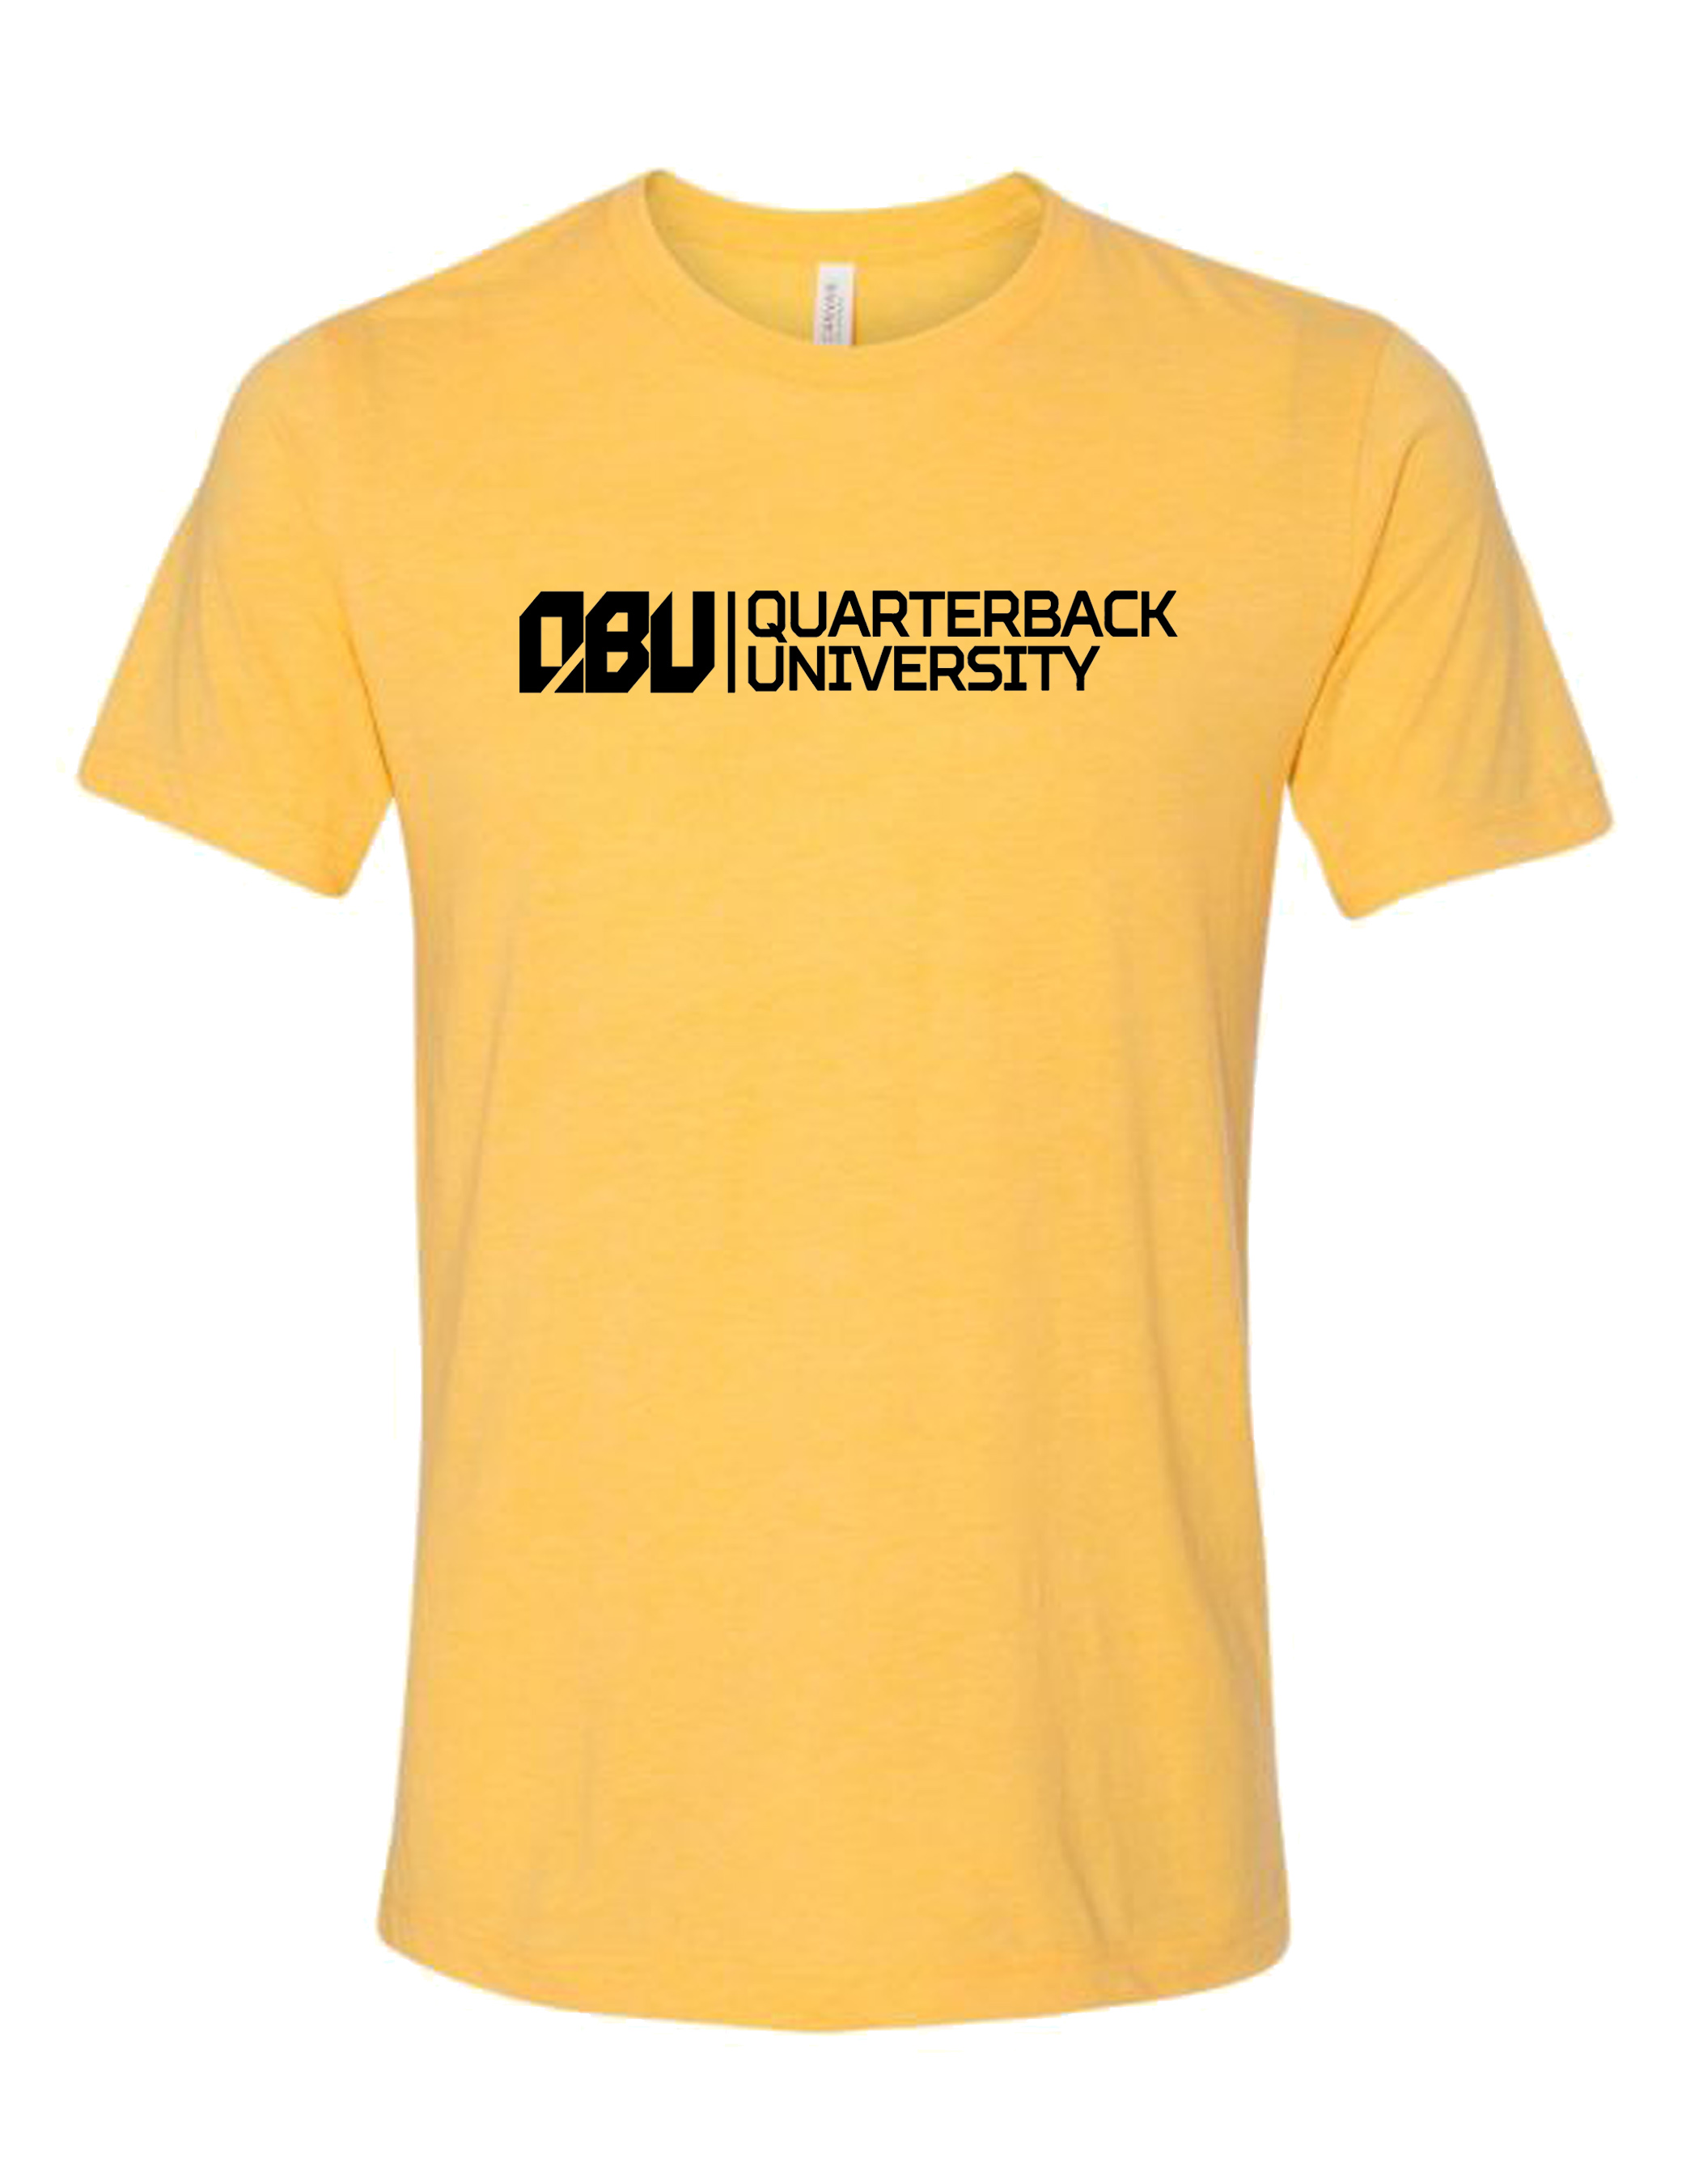 Quarterback University Tee Yellow